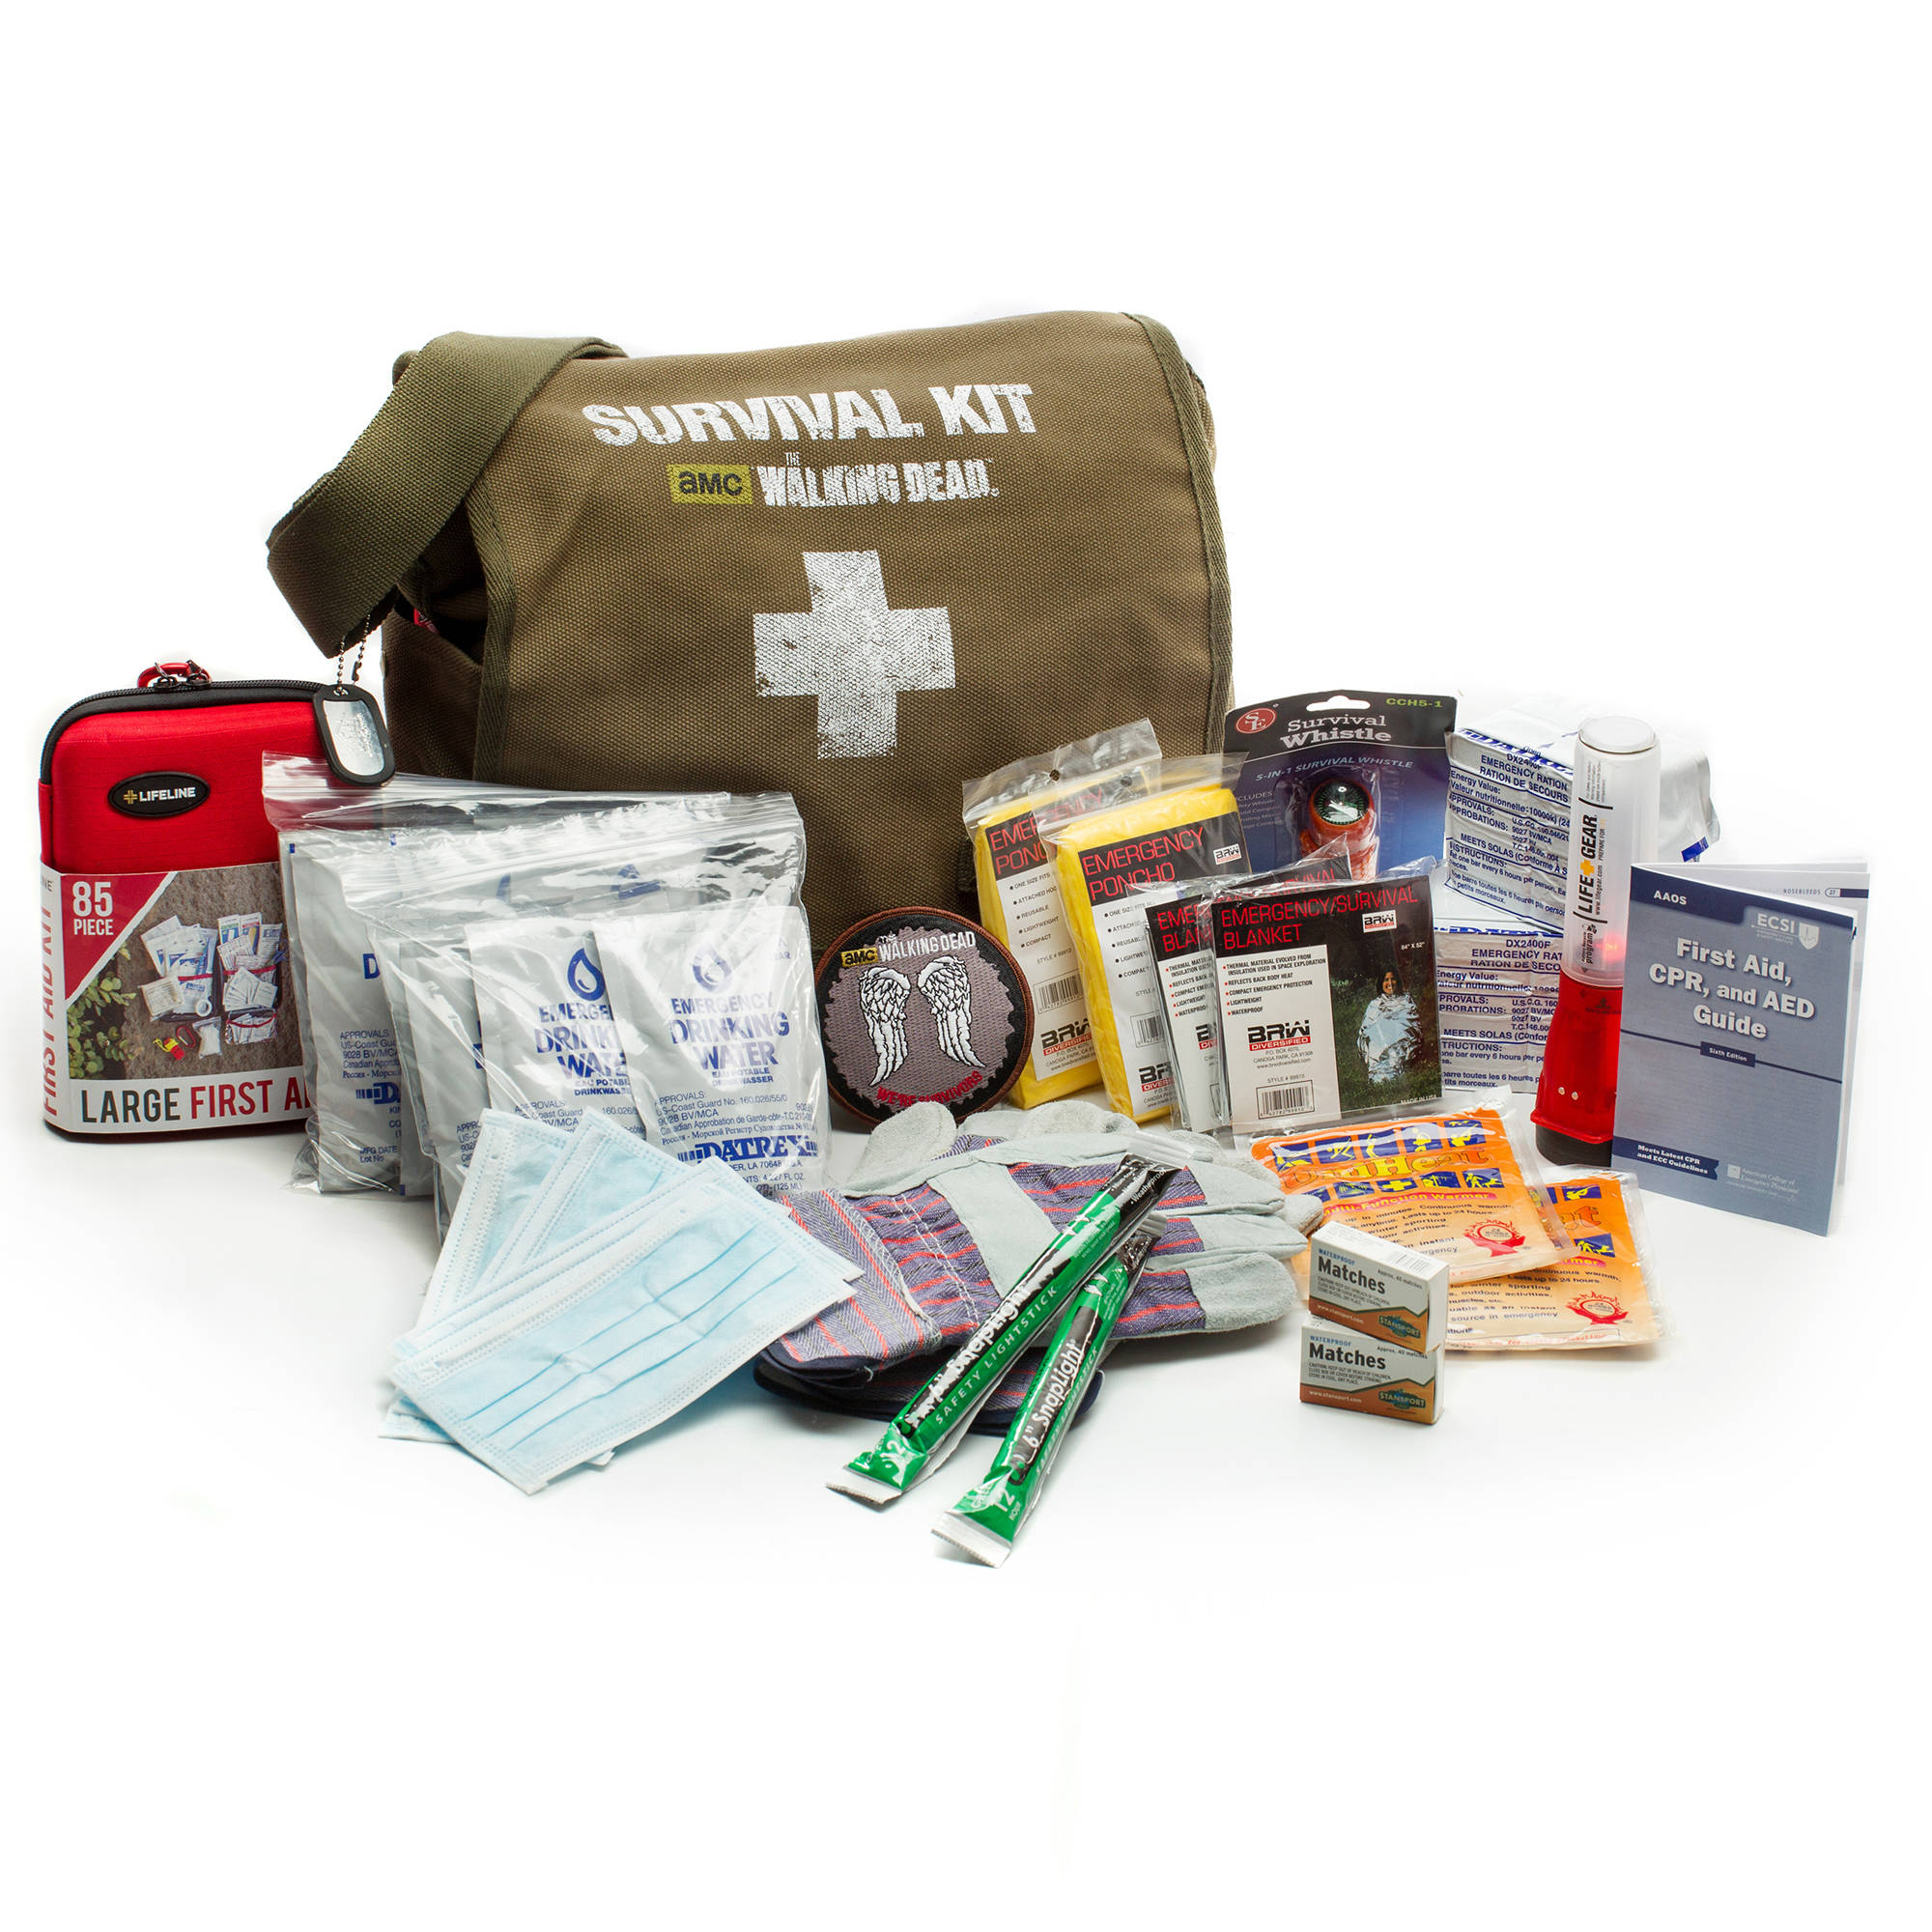 AMC The Walking Dead Survival Kit, 2 Person, 72 Hours by